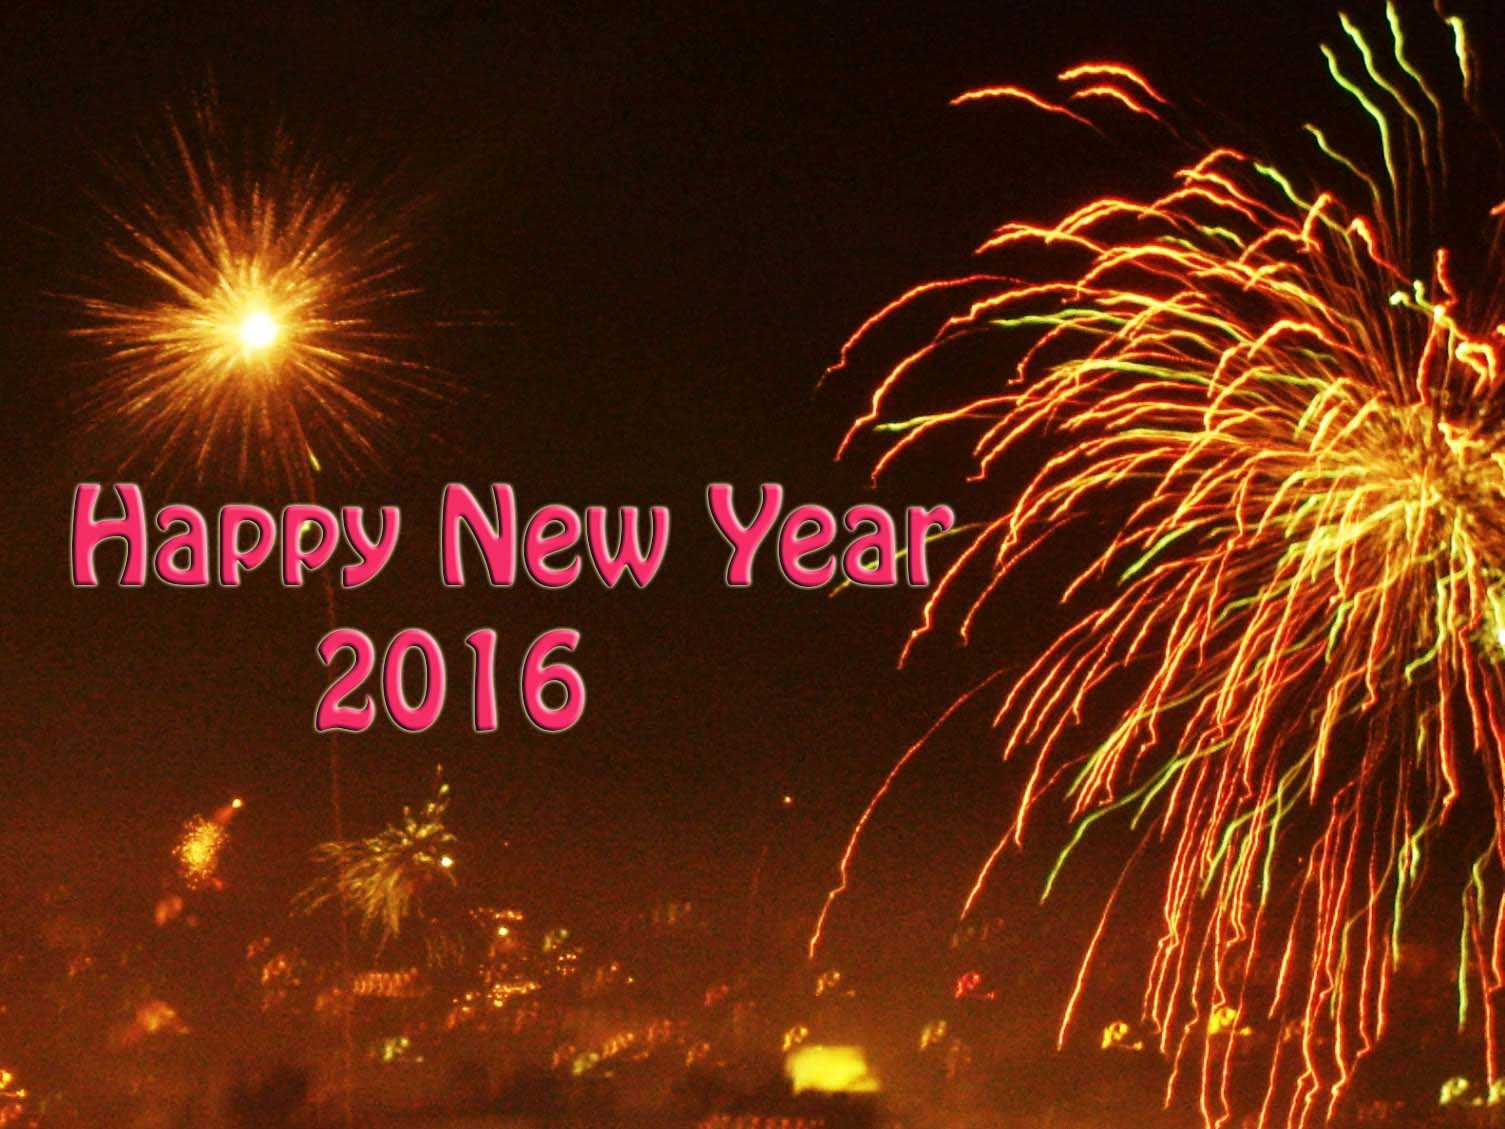 Happy New Year 2016 Awesome Wallpapers Collection (Top 20